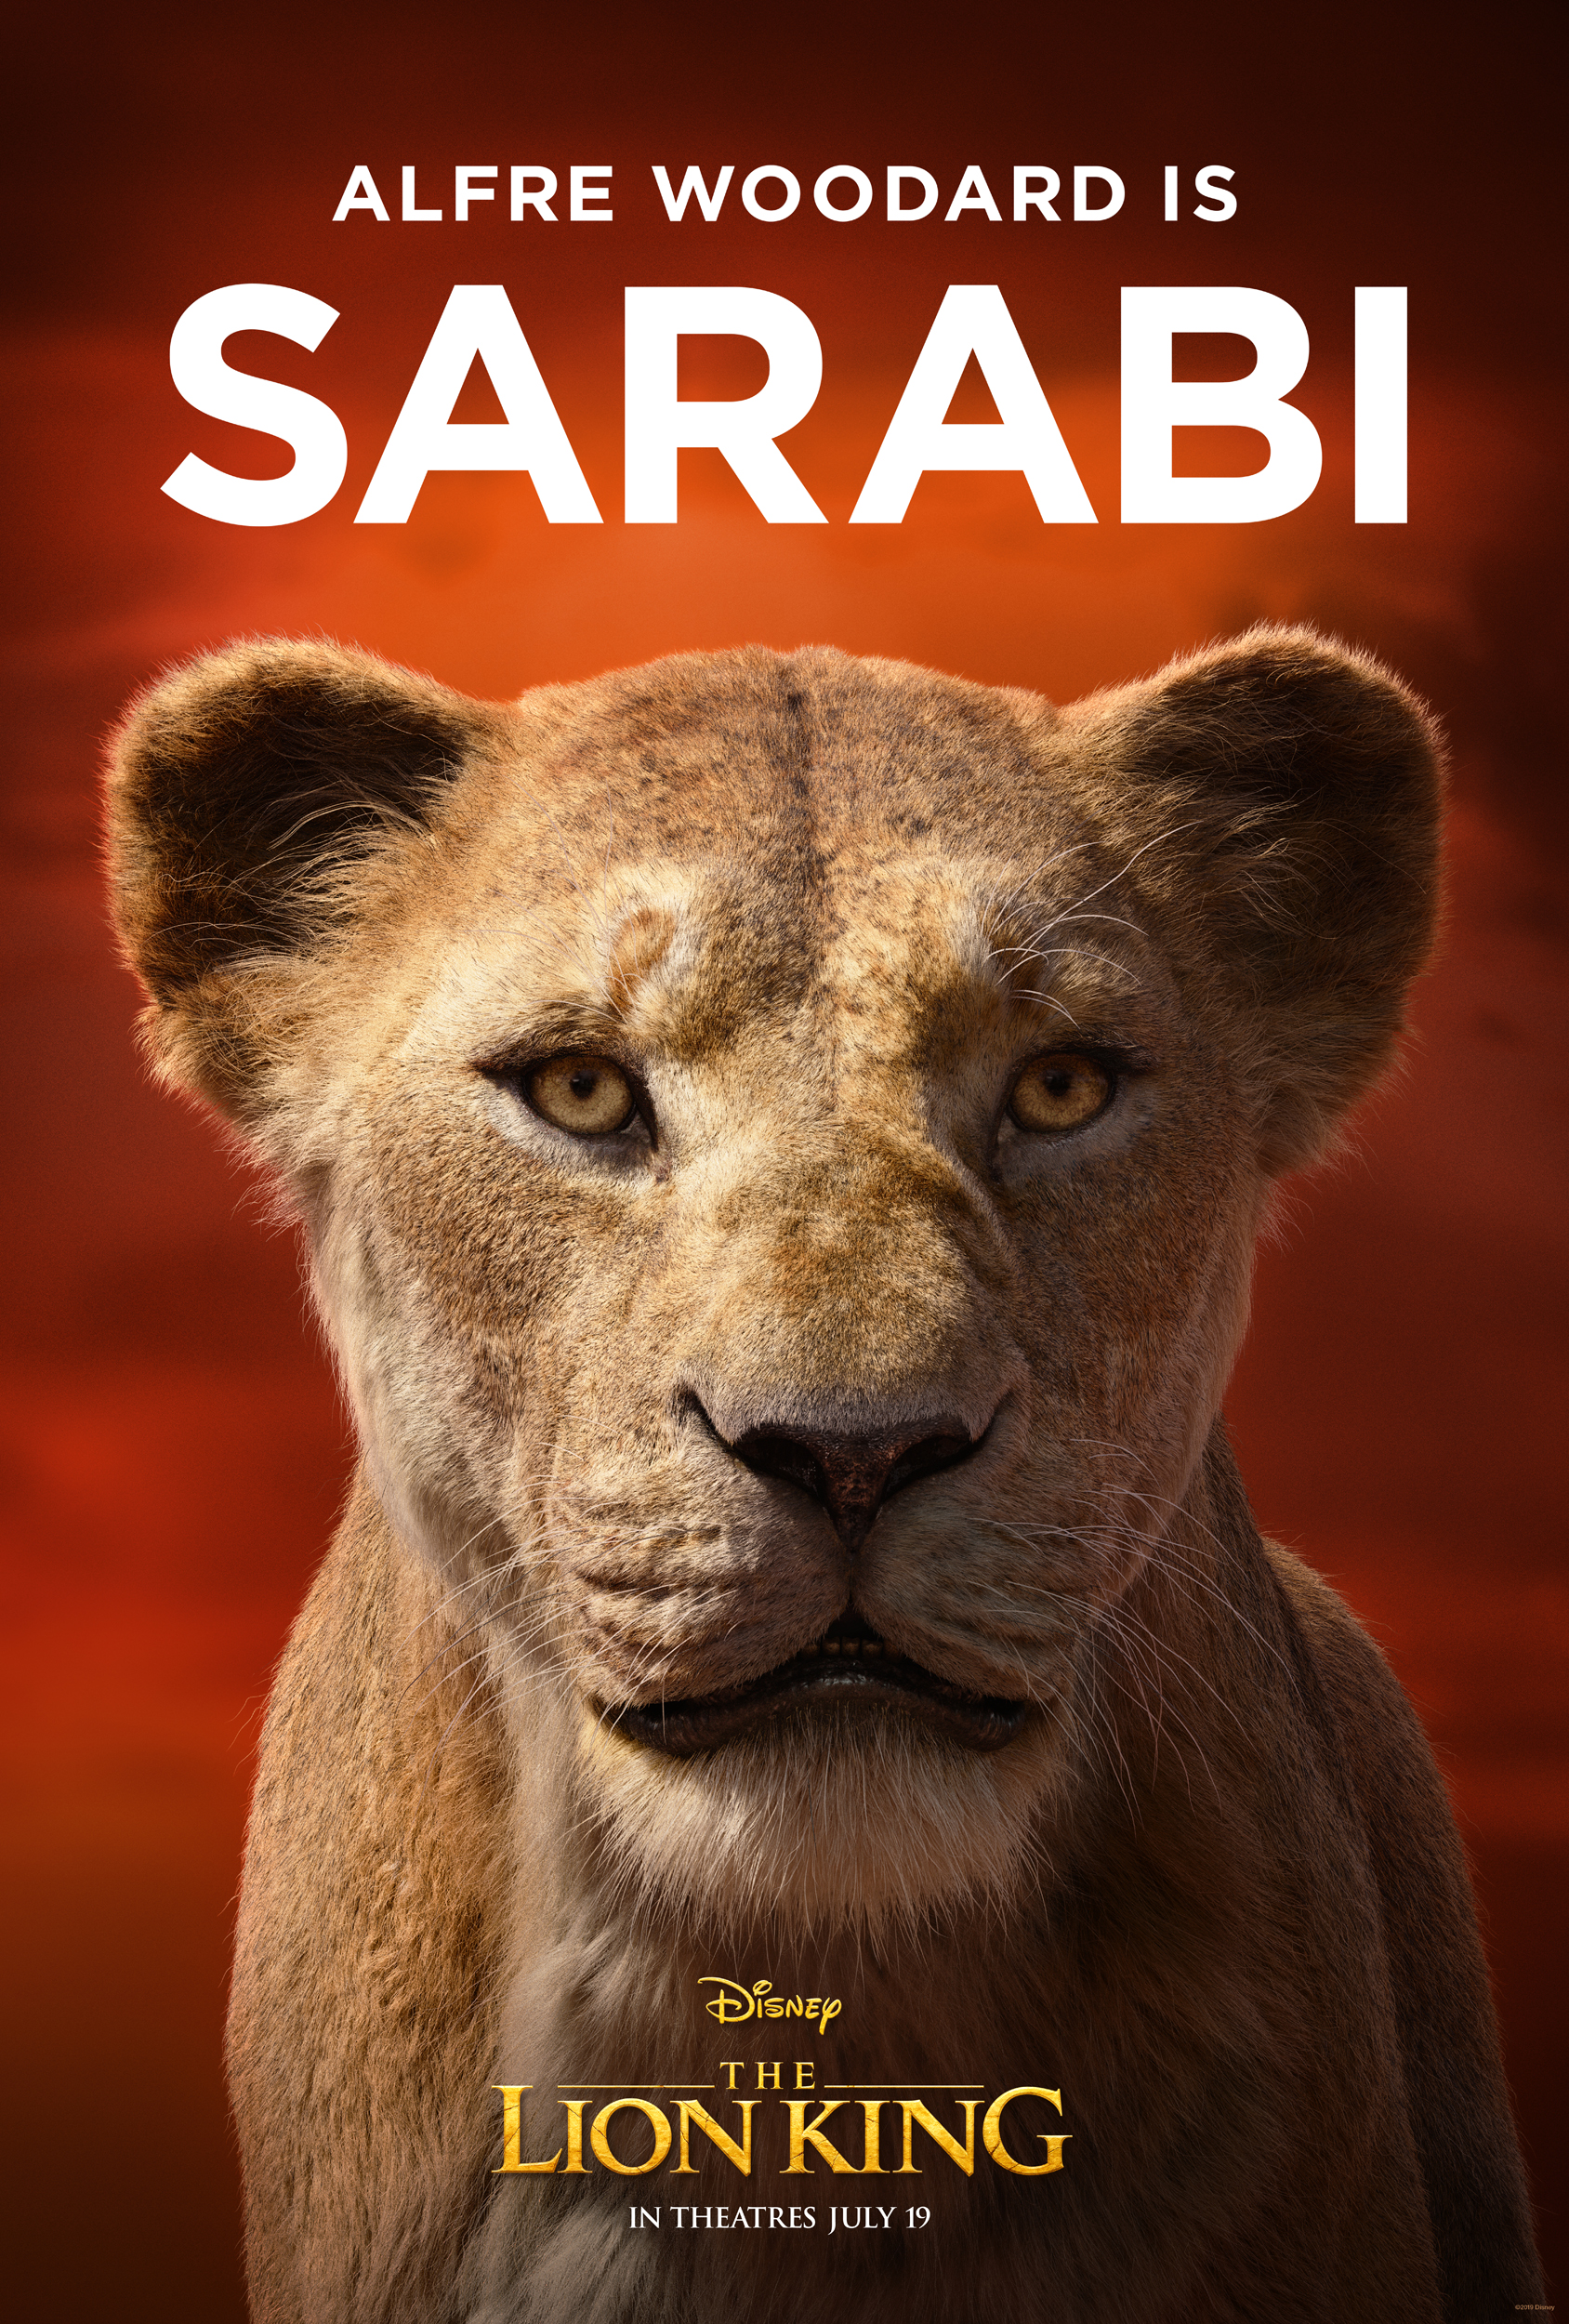 Check Out The Lion King New Images Of Films Cast With Their